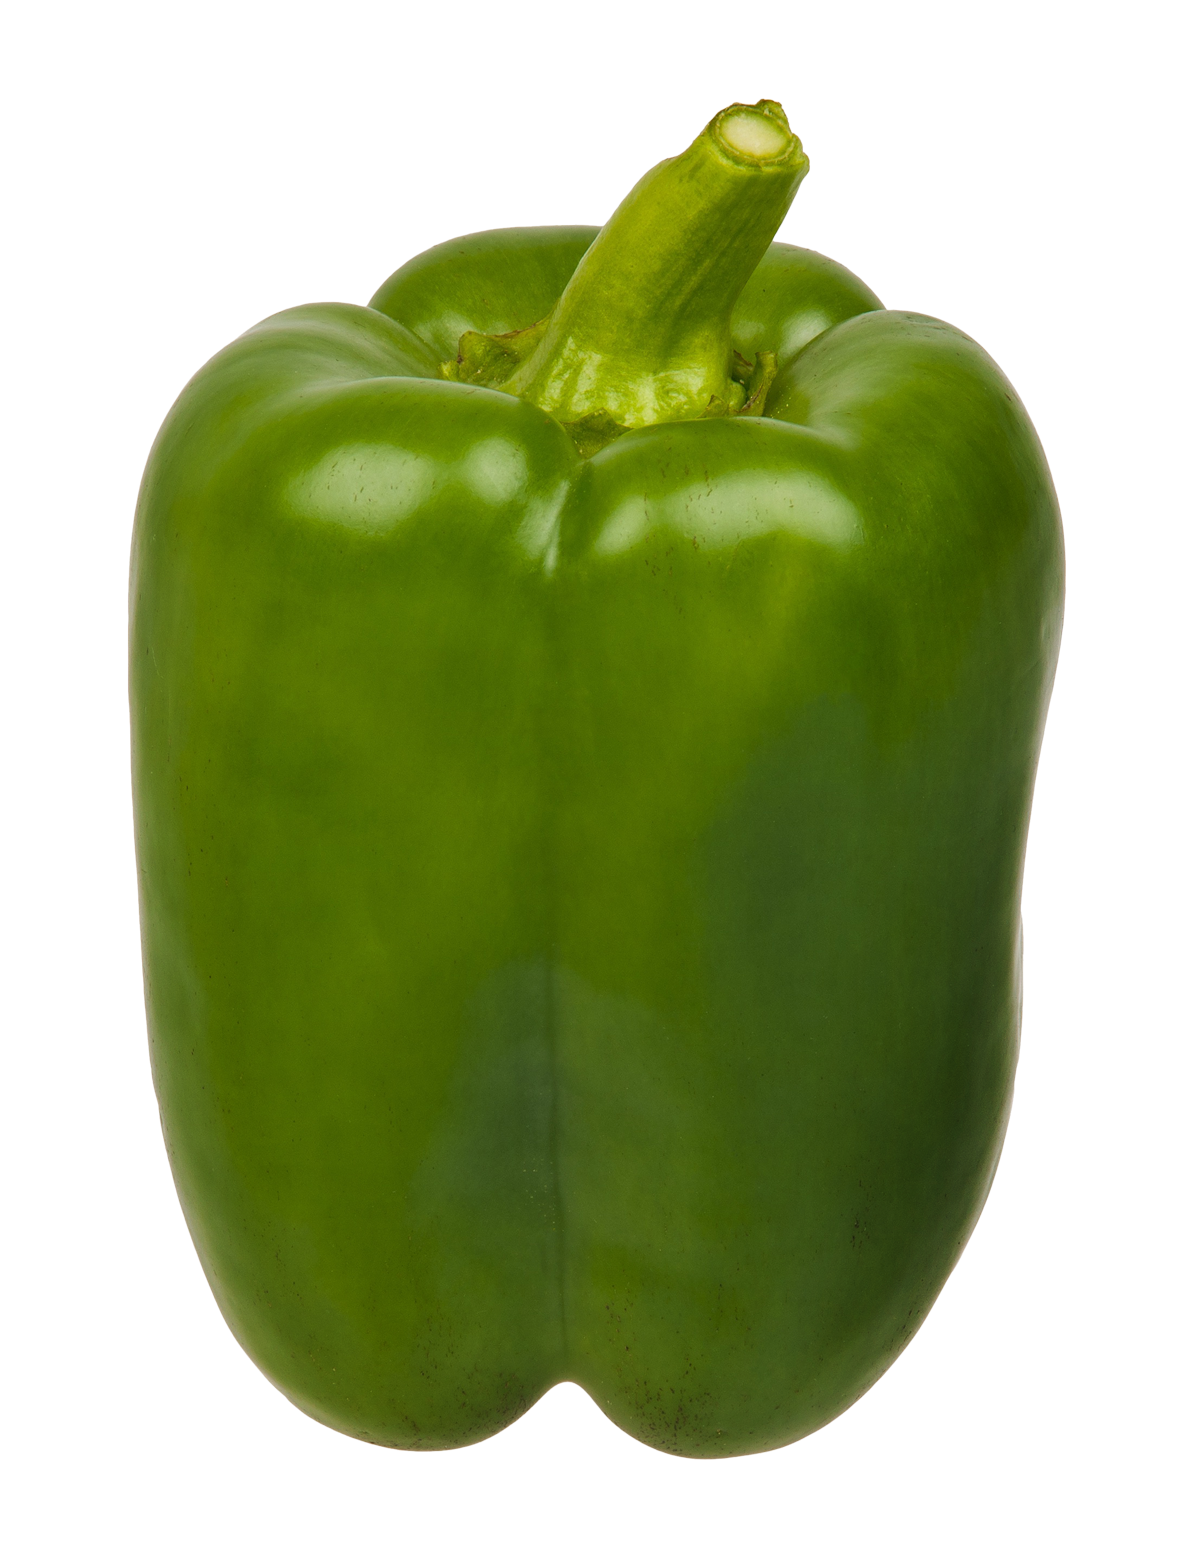 Bell pepper png image. Peppers clipart green vegetable